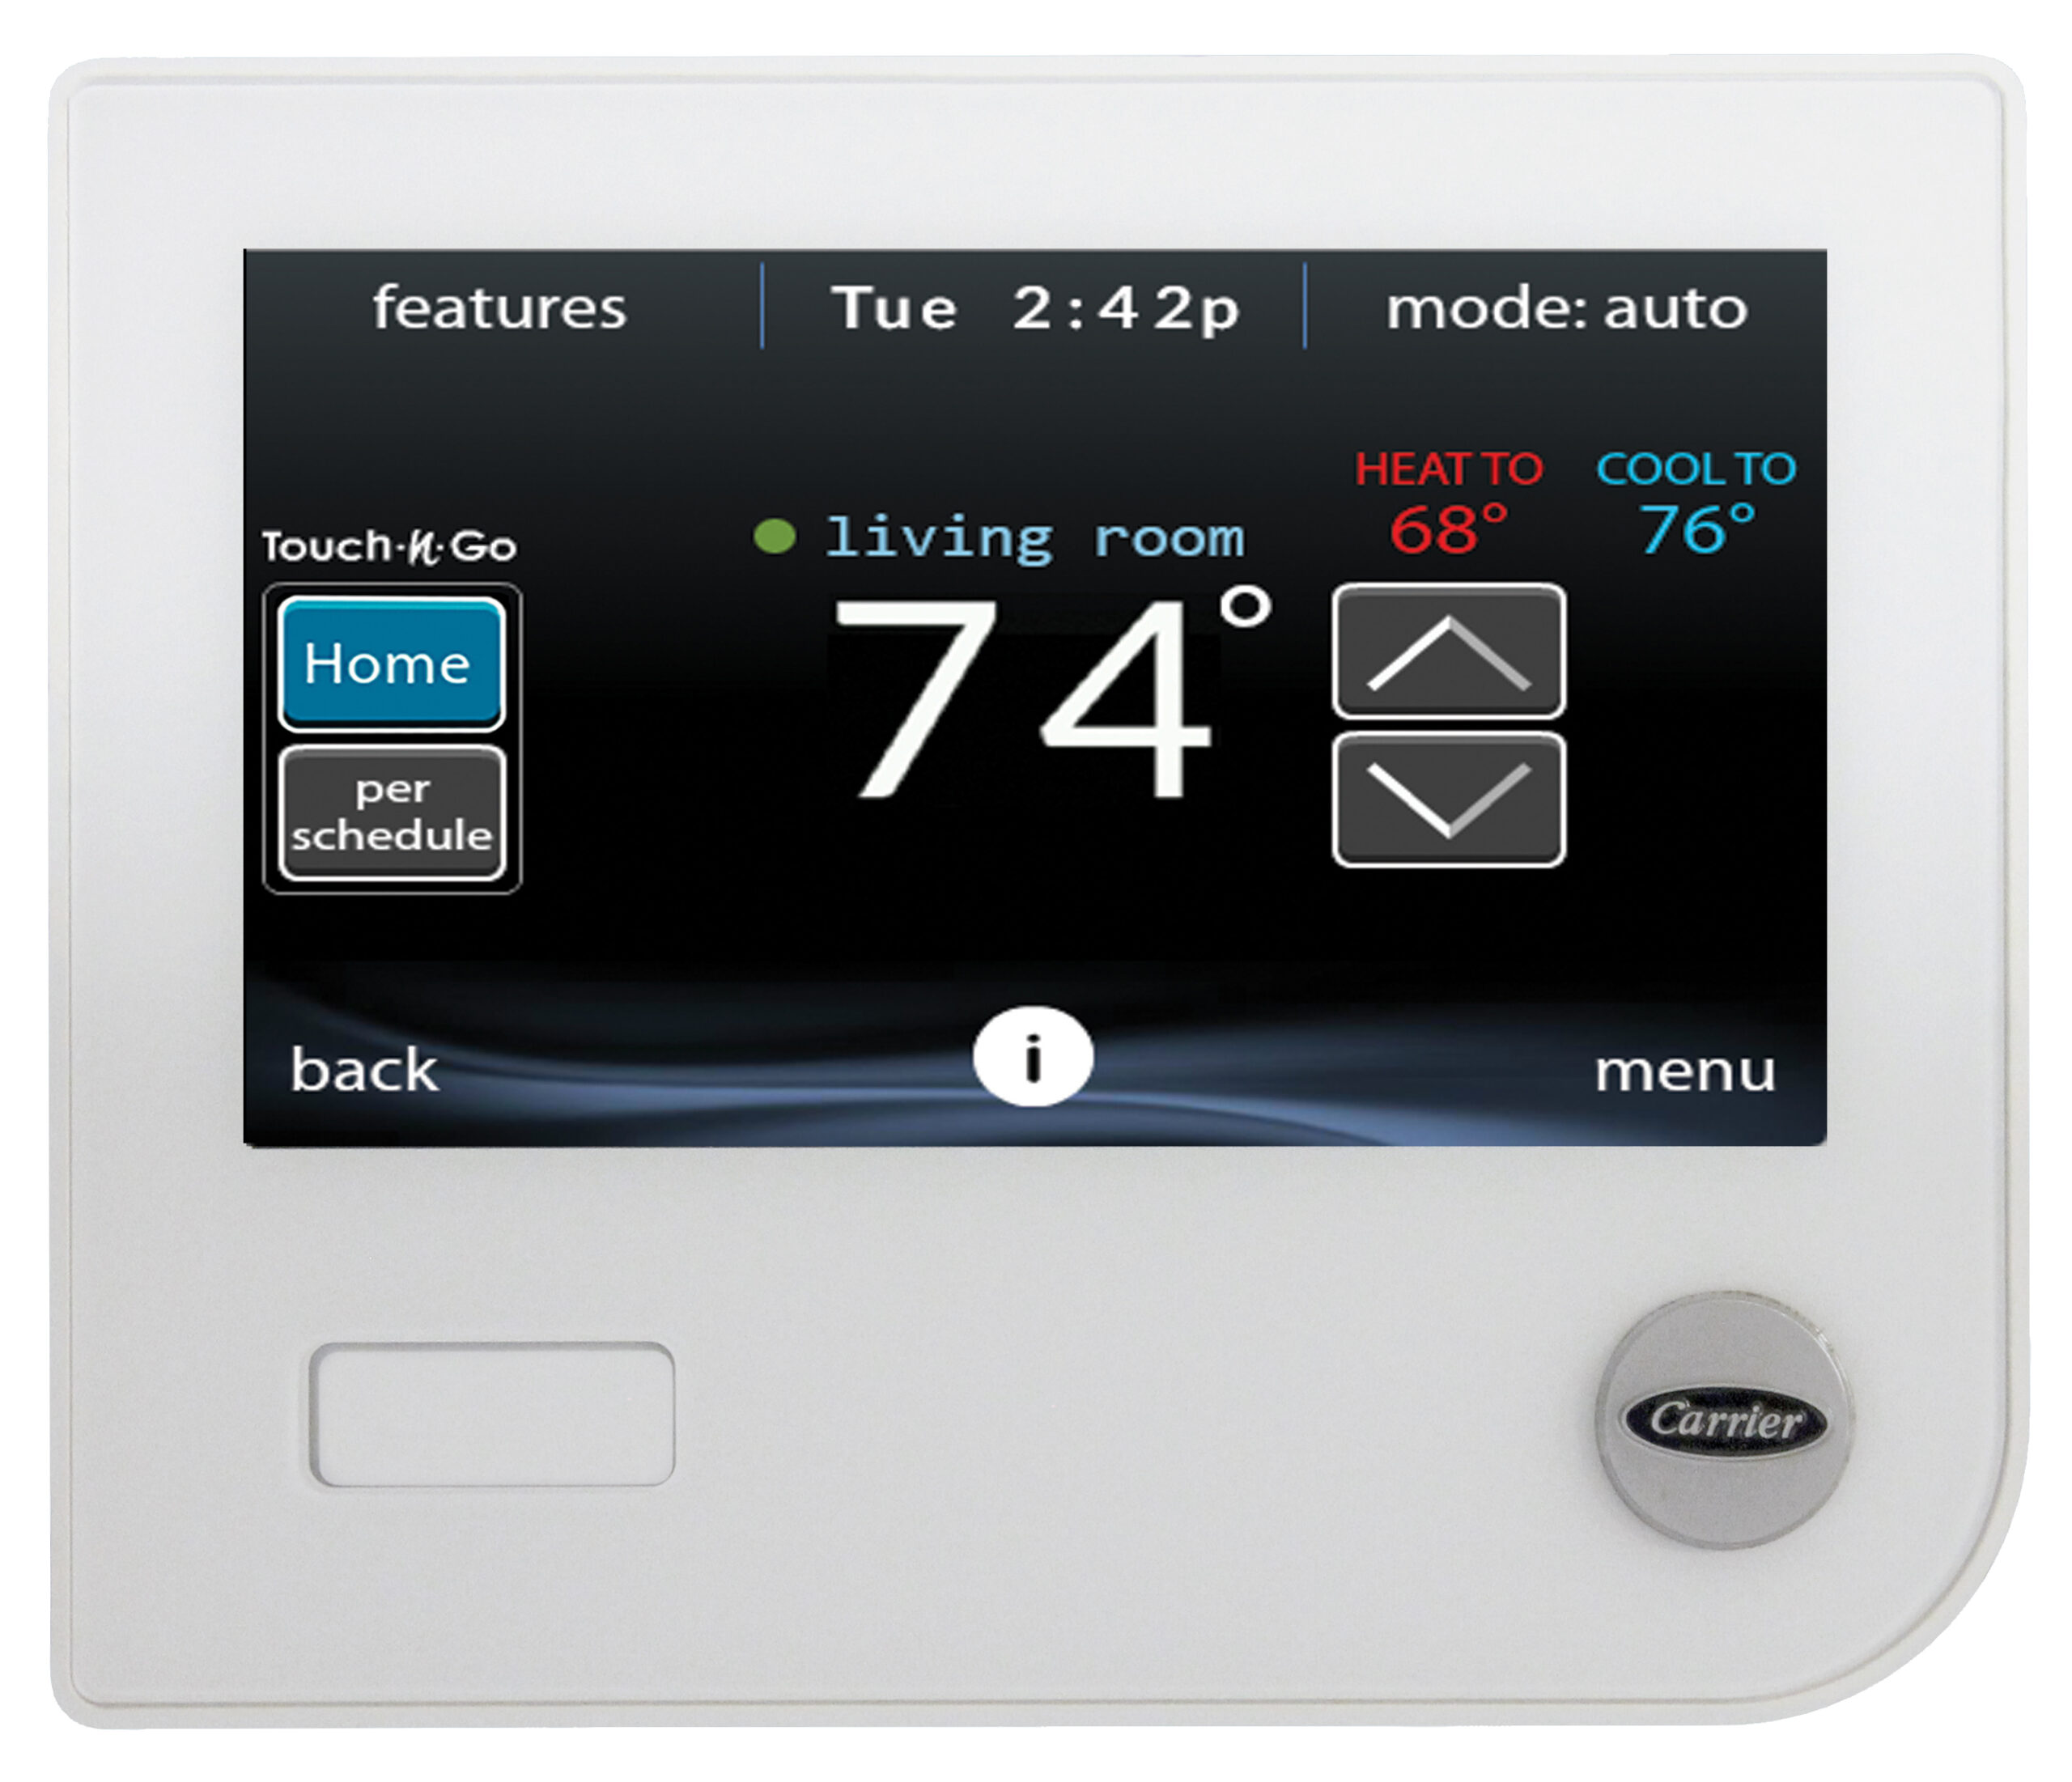 Take the time to make sure your thermostat is functioning properly.